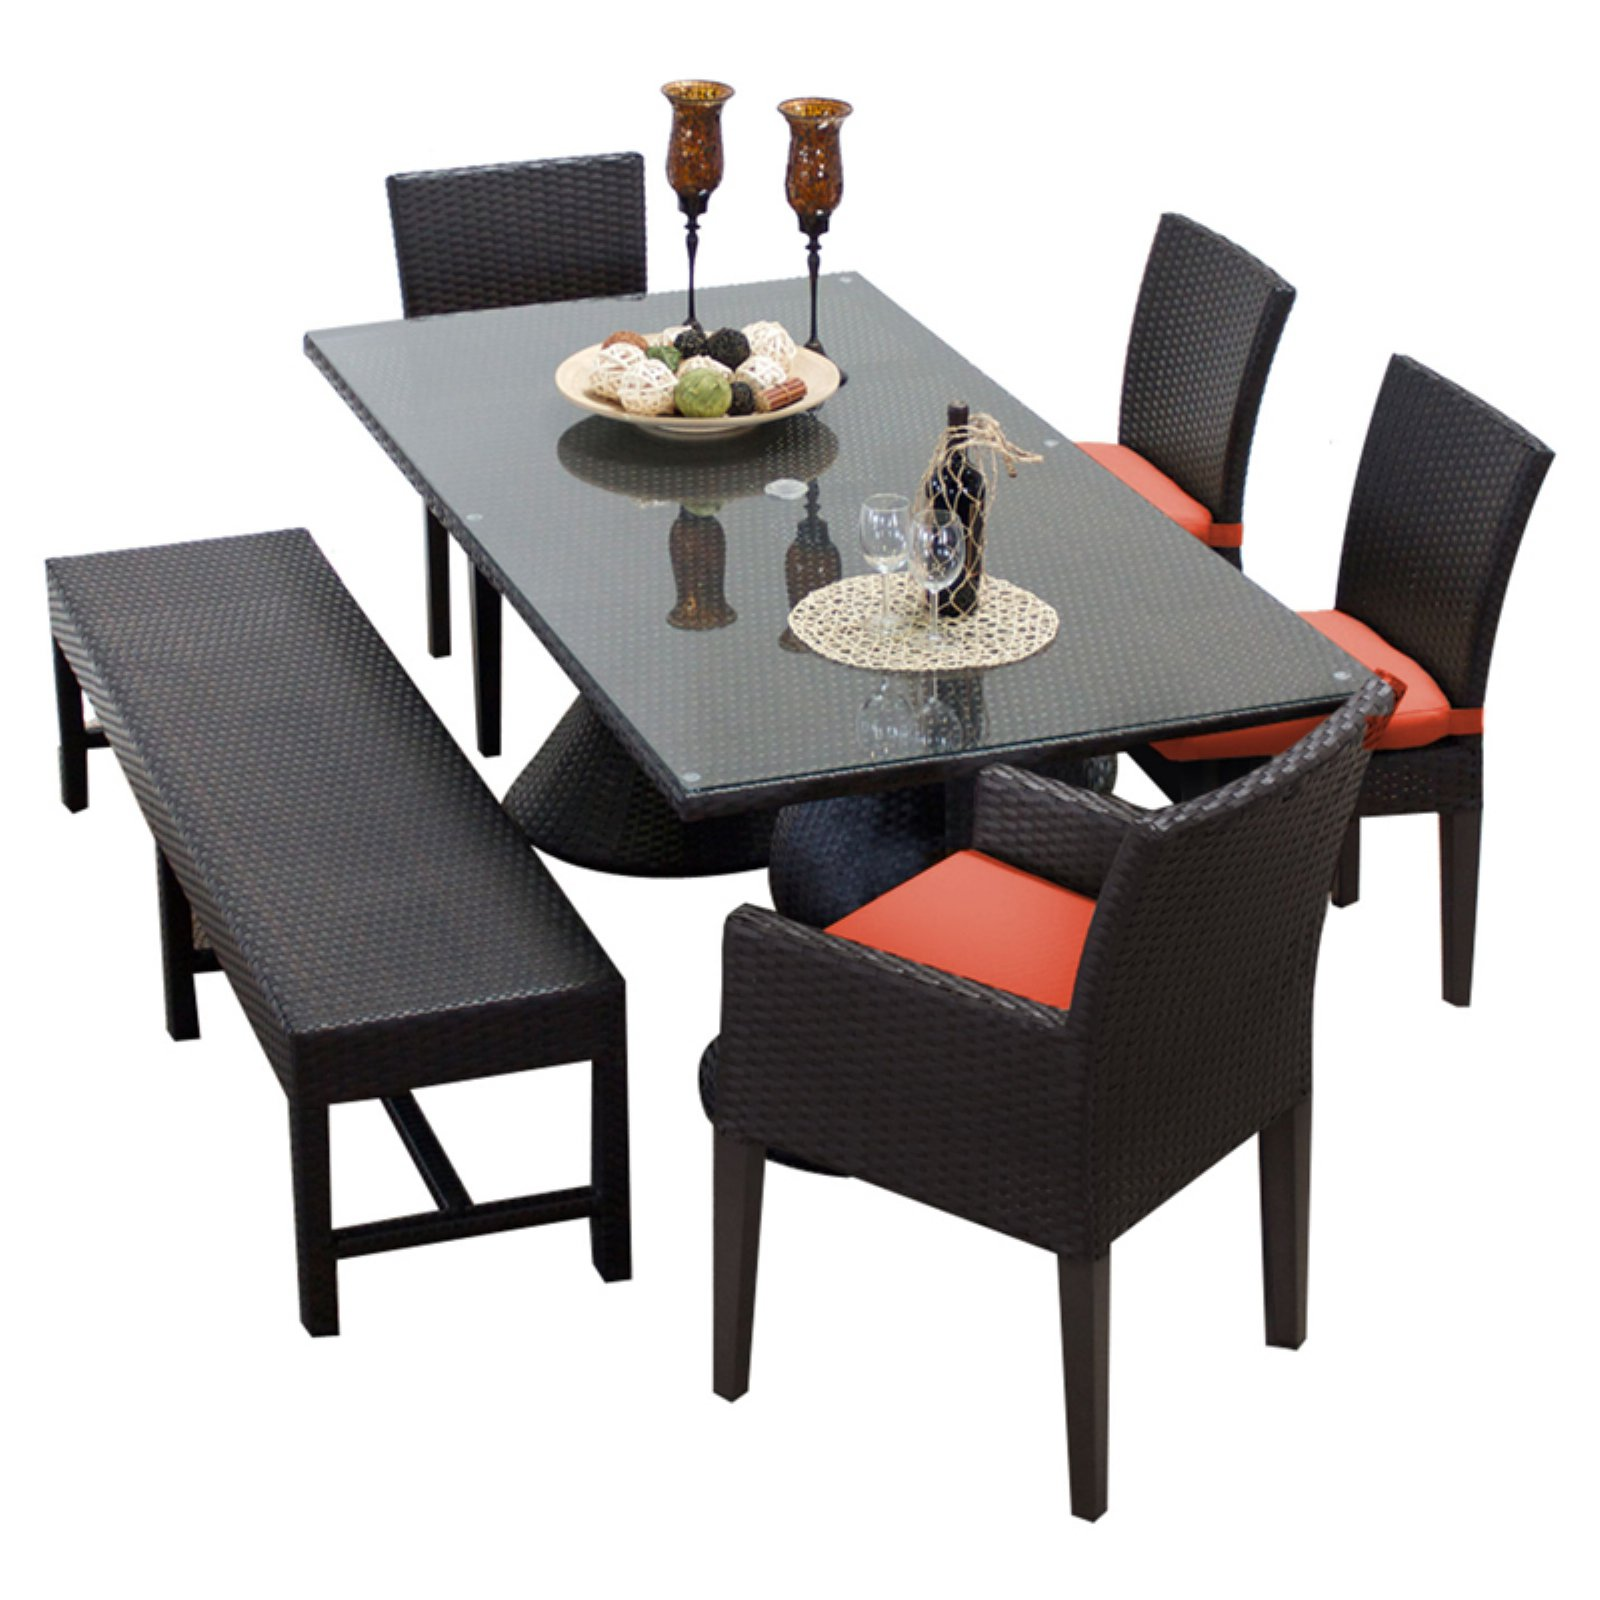 TK Classics Napa Wicker 6 Piece Rectangular Patio Dining Set with 8 Cushion Covers